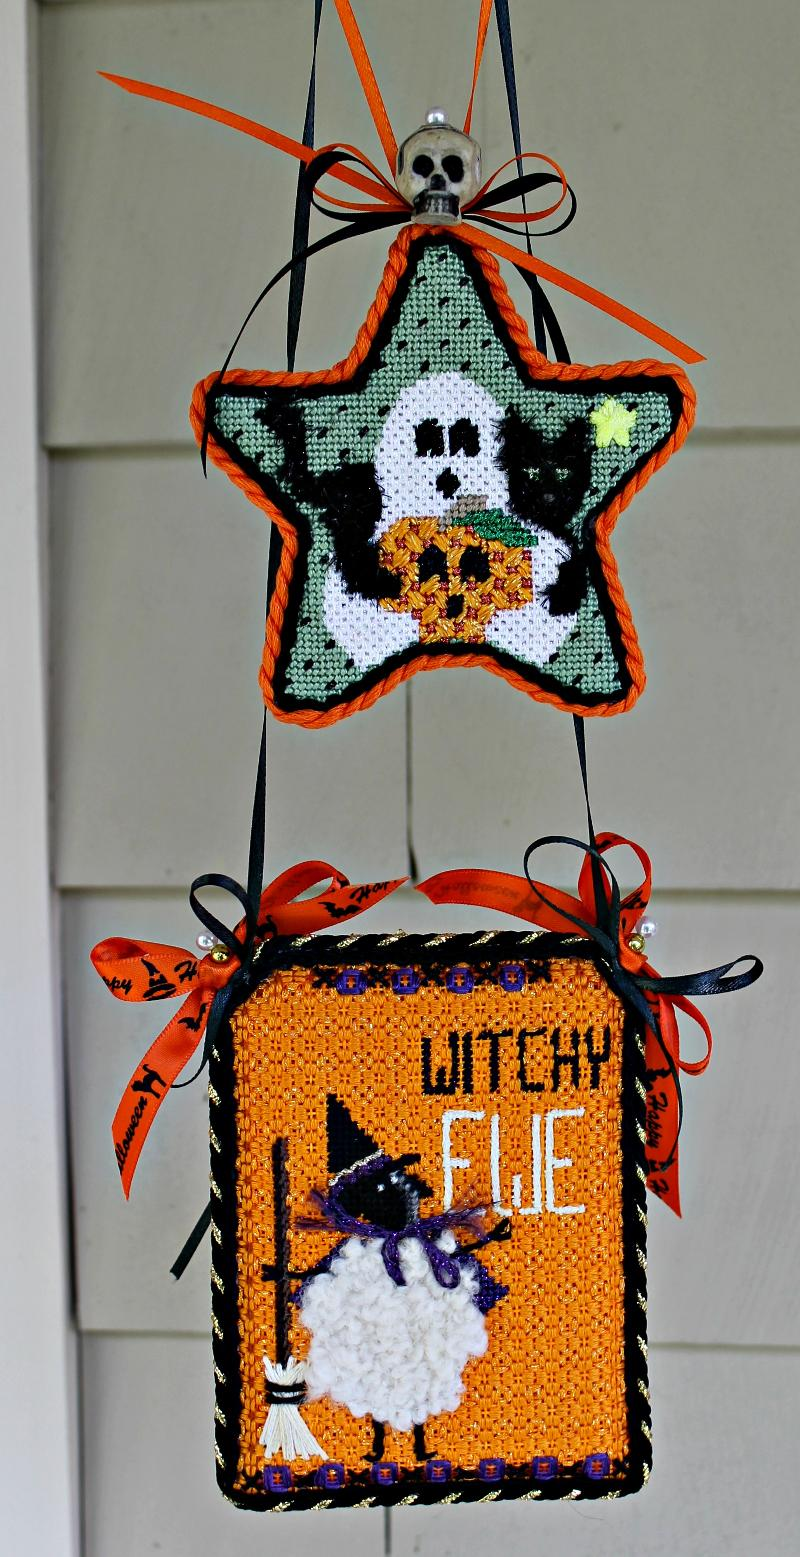 2 Hanging Halloween Decorations